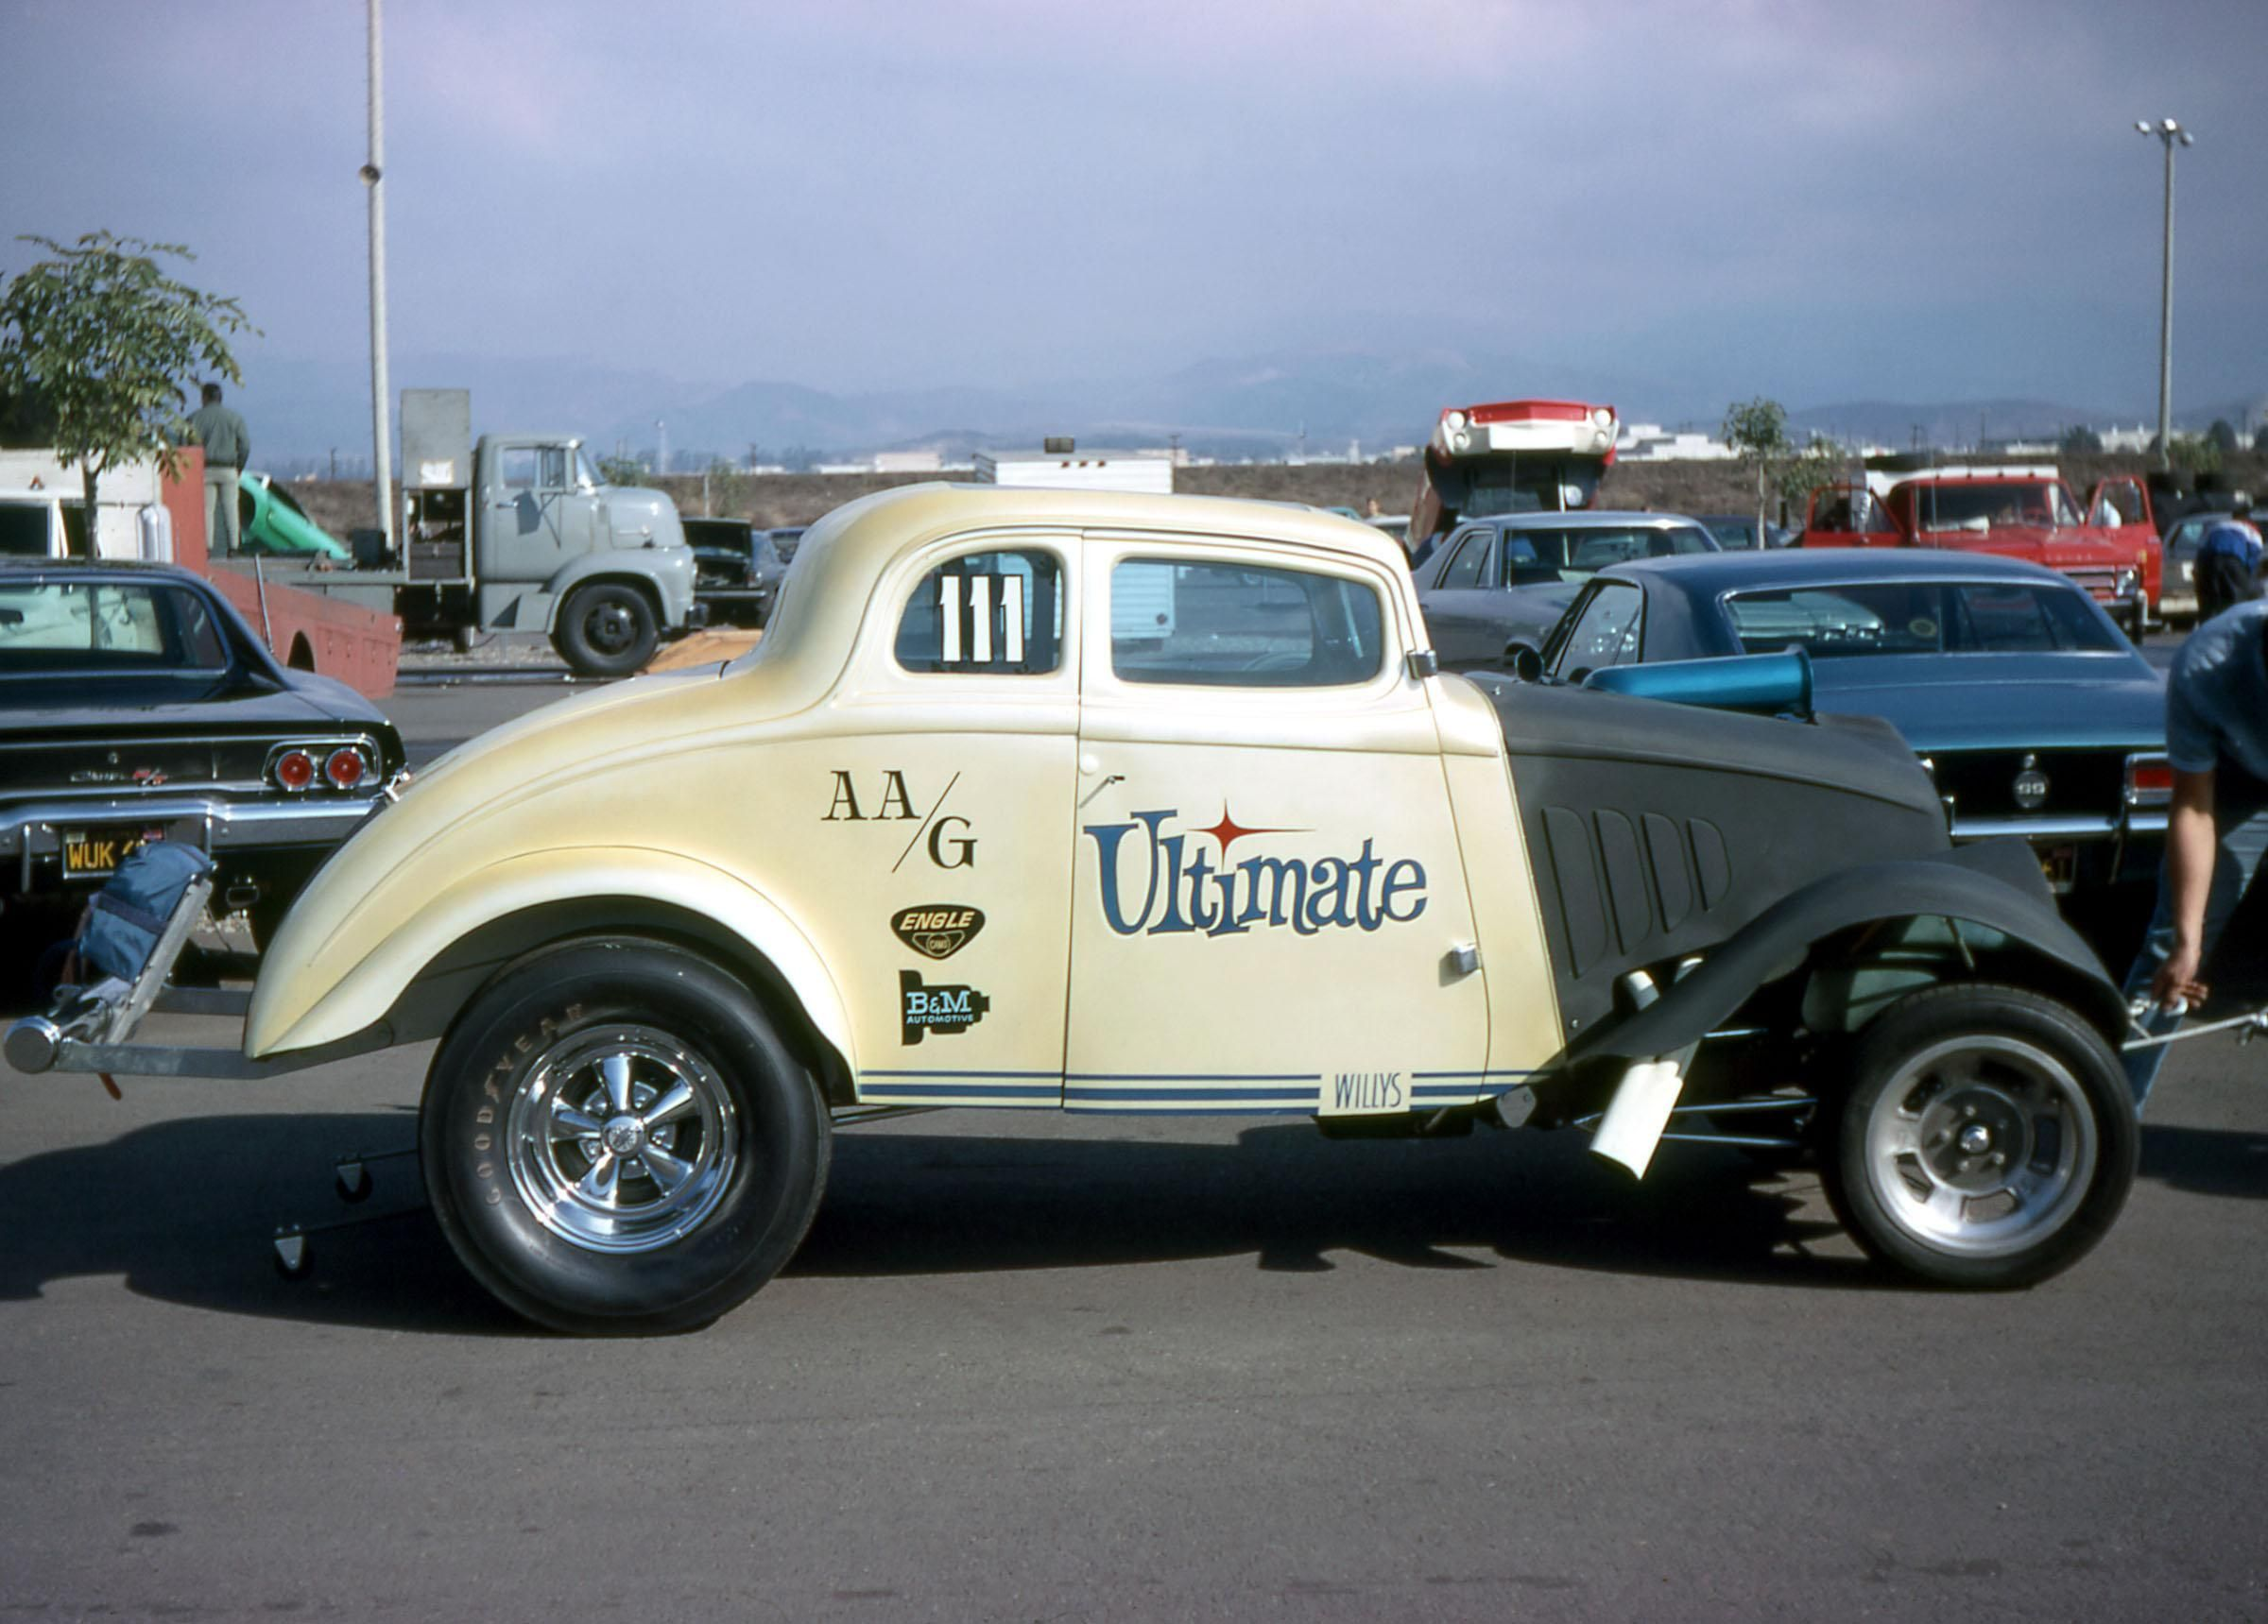 33 Willys Gasser Ultimate Hot Rods Cars Hot Cars Willys